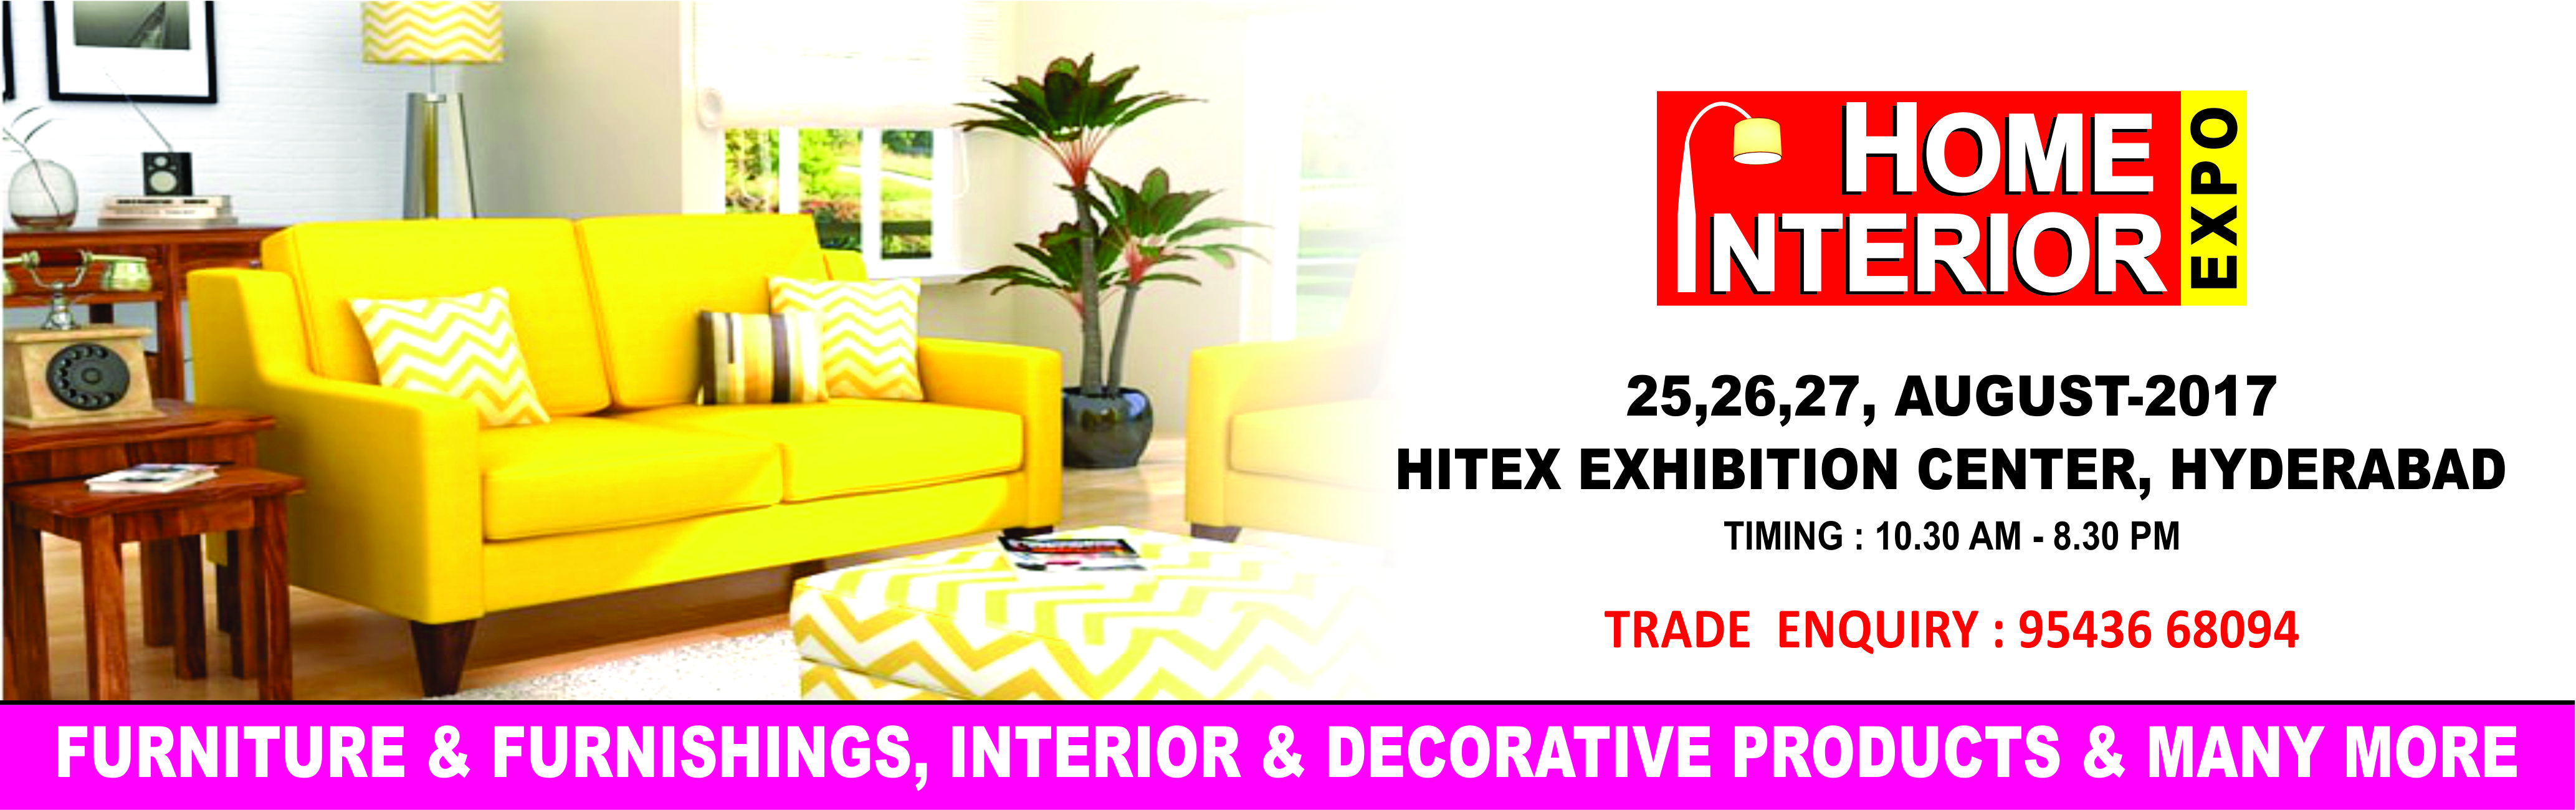 70 Home Furniture Expo 2017 Chennai Health Food Fitness Expo 2017 At Chennai Prompt Trade